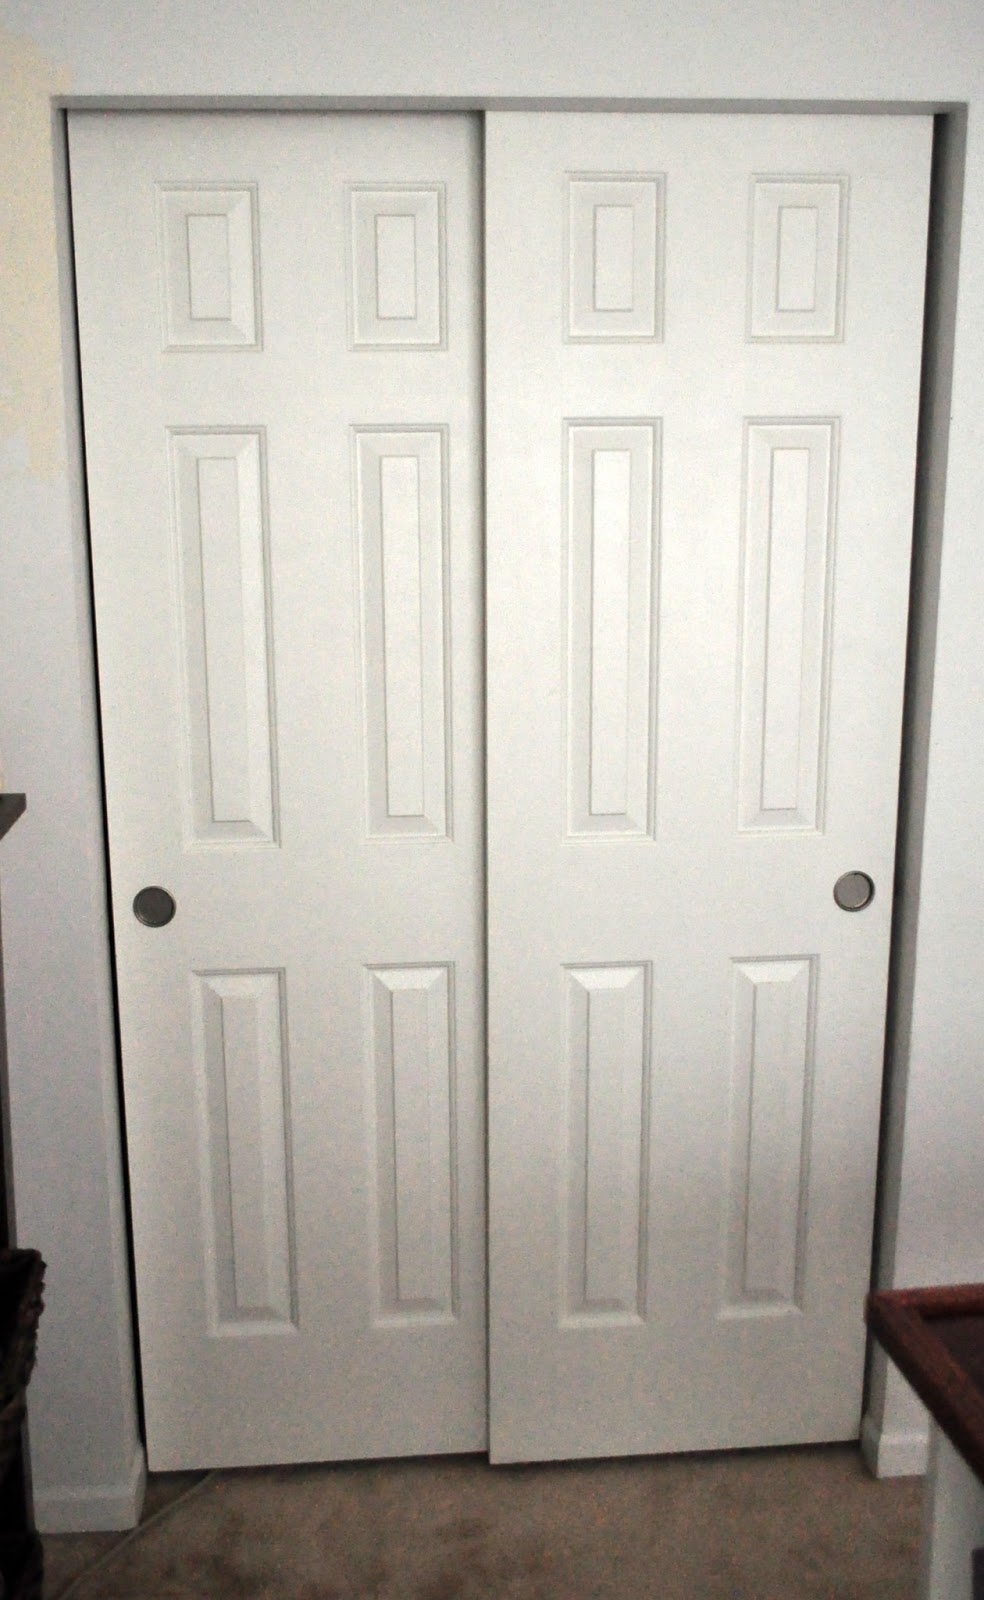 Sliding Bypass Closet Door Hardware